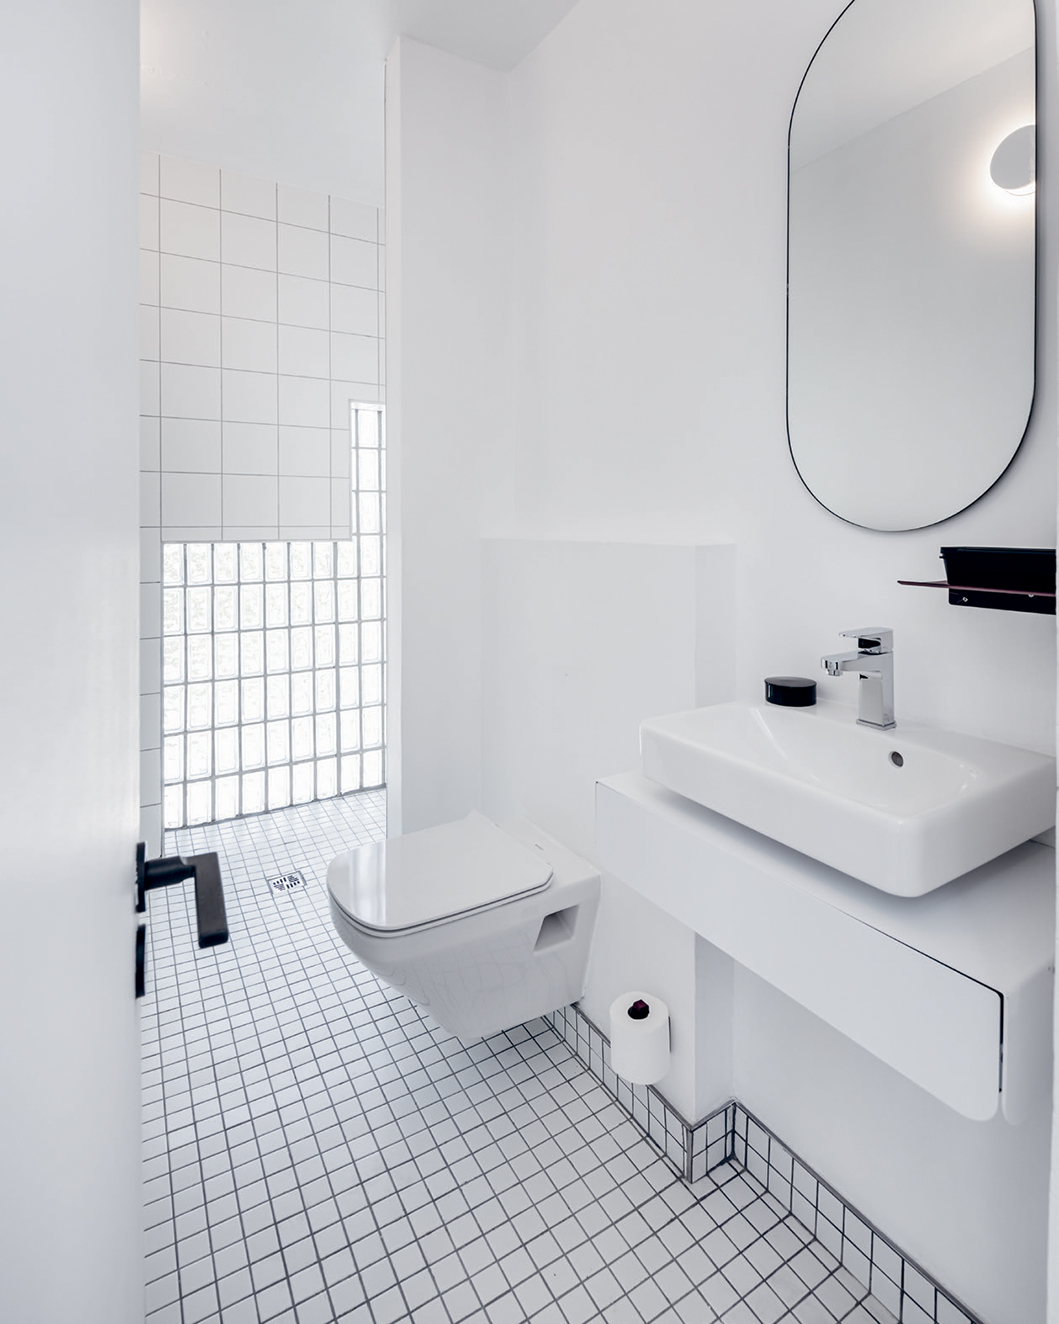 Bold striped floors create a mesmerising optical illusion; simplicity and functionality reign supreme in the bathrooms.